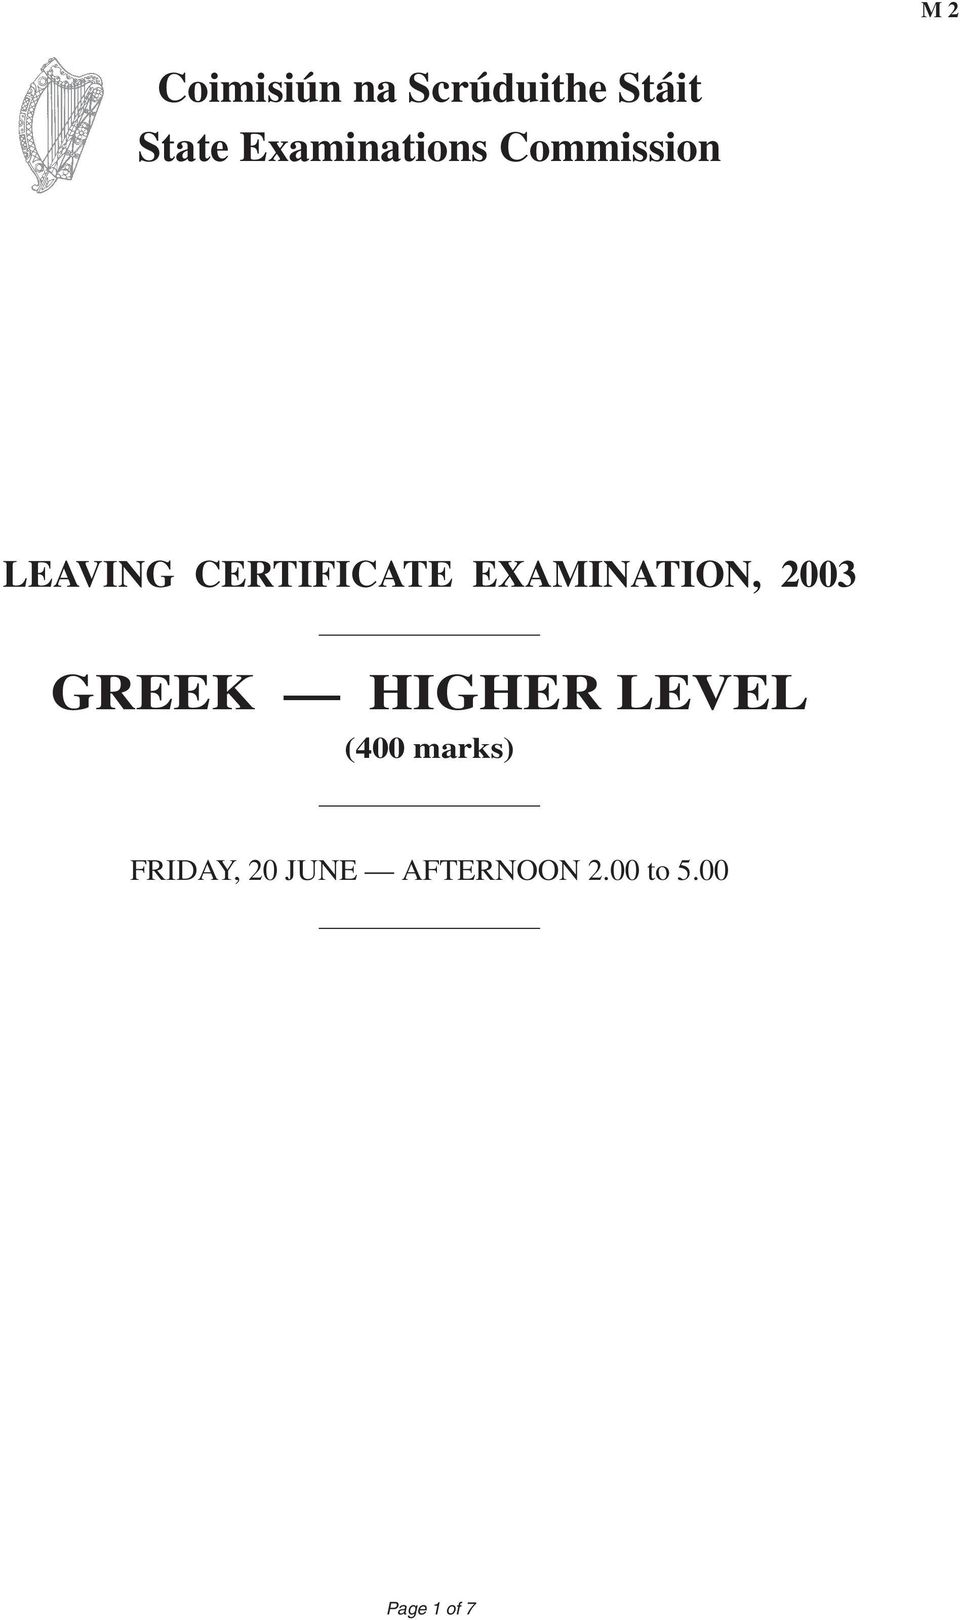 EXAMINATION, 2003 GREEK HIGHER LEVEL (400